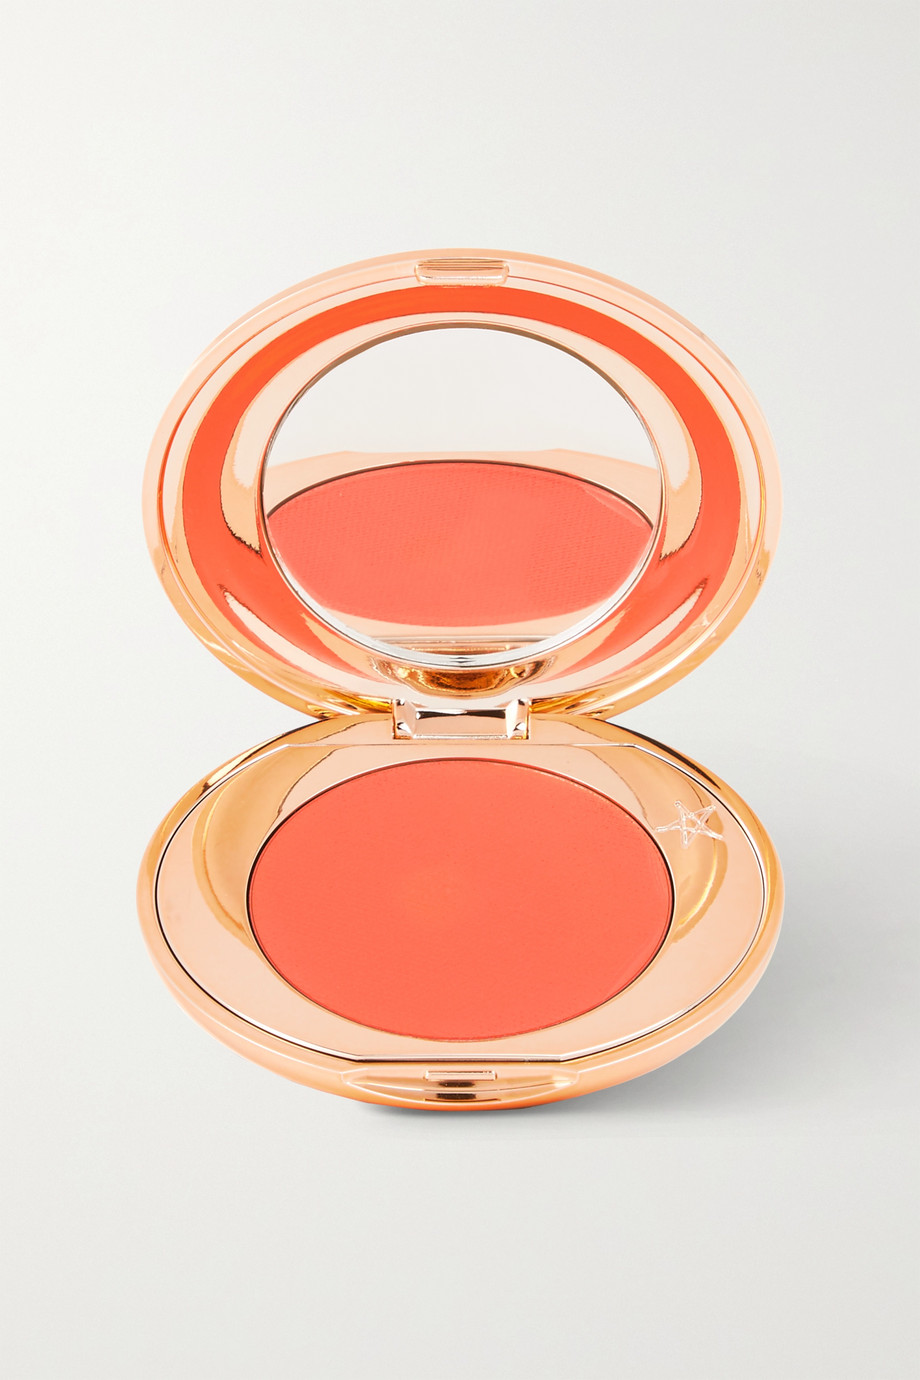 Charlotte Tilbury Magic Vanish - Tan